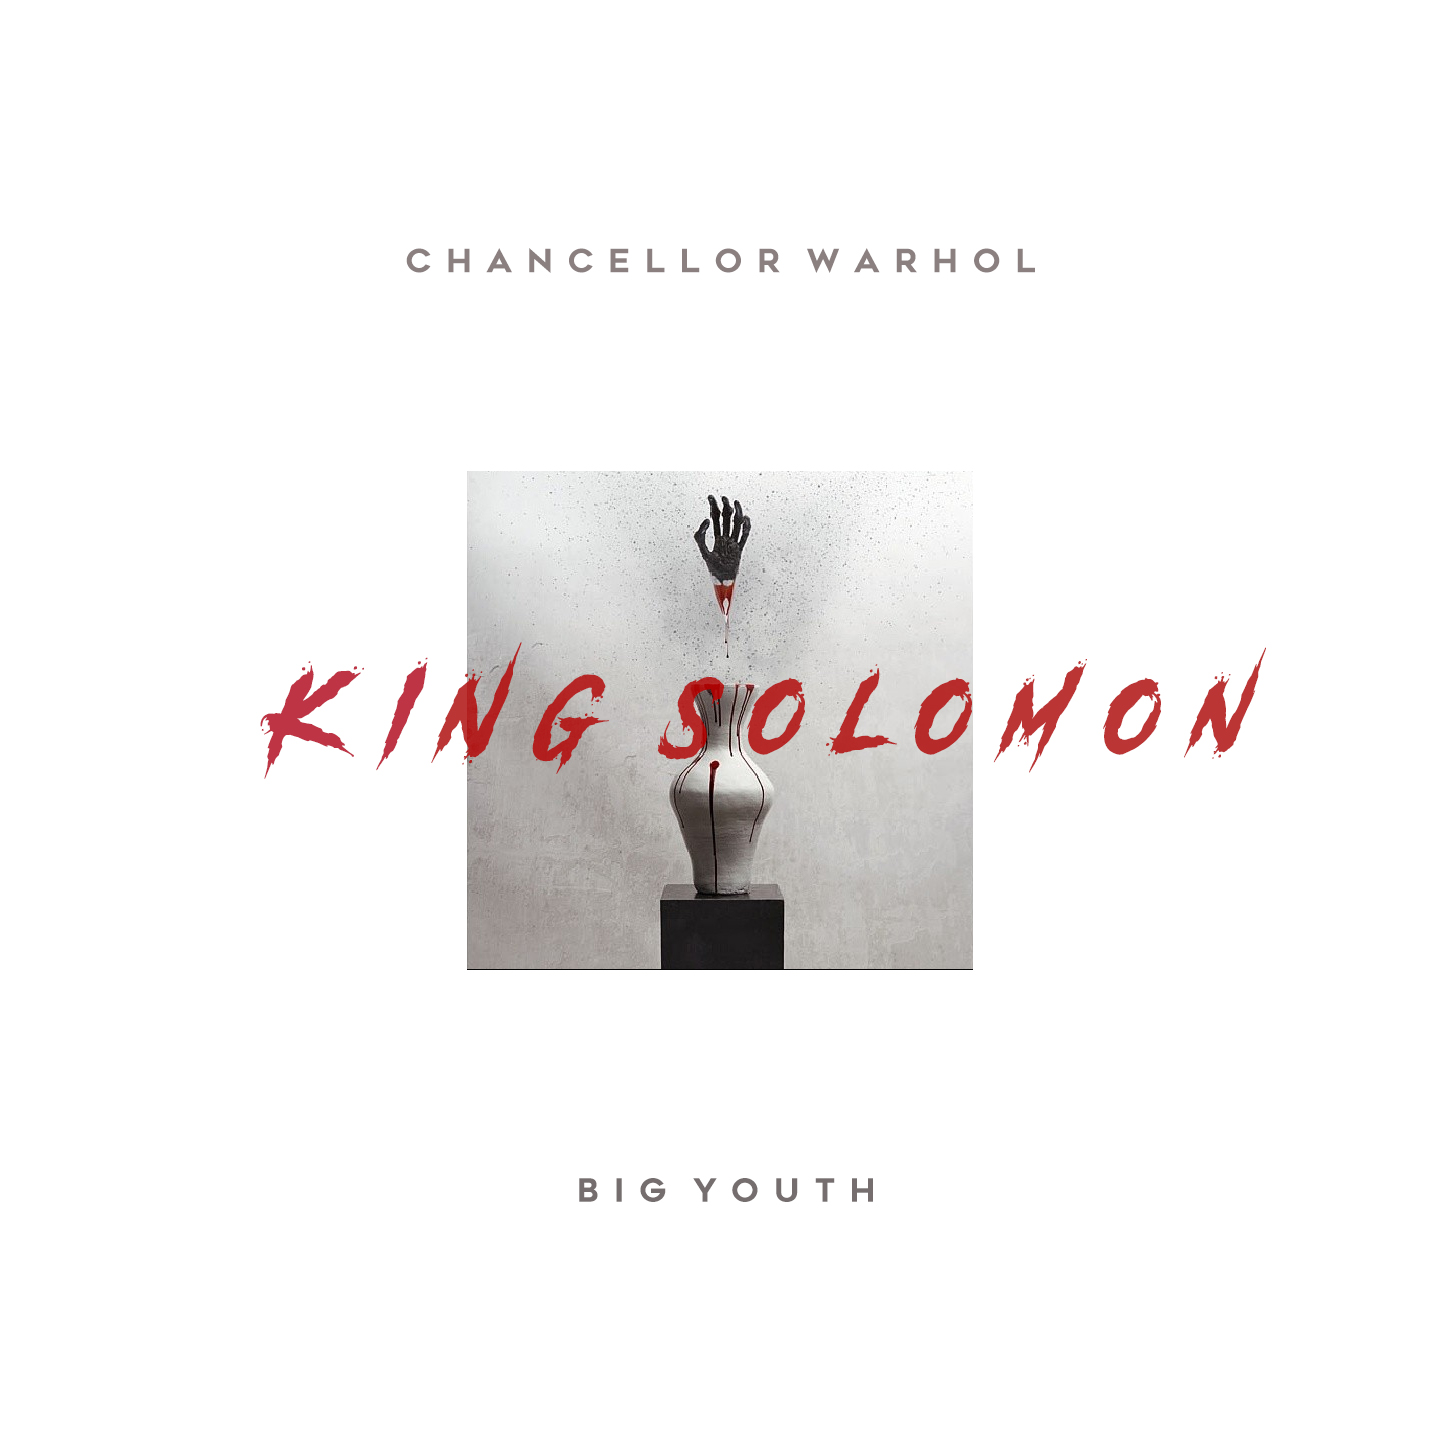 SXS041 Chancellor Warhol - King Solomon